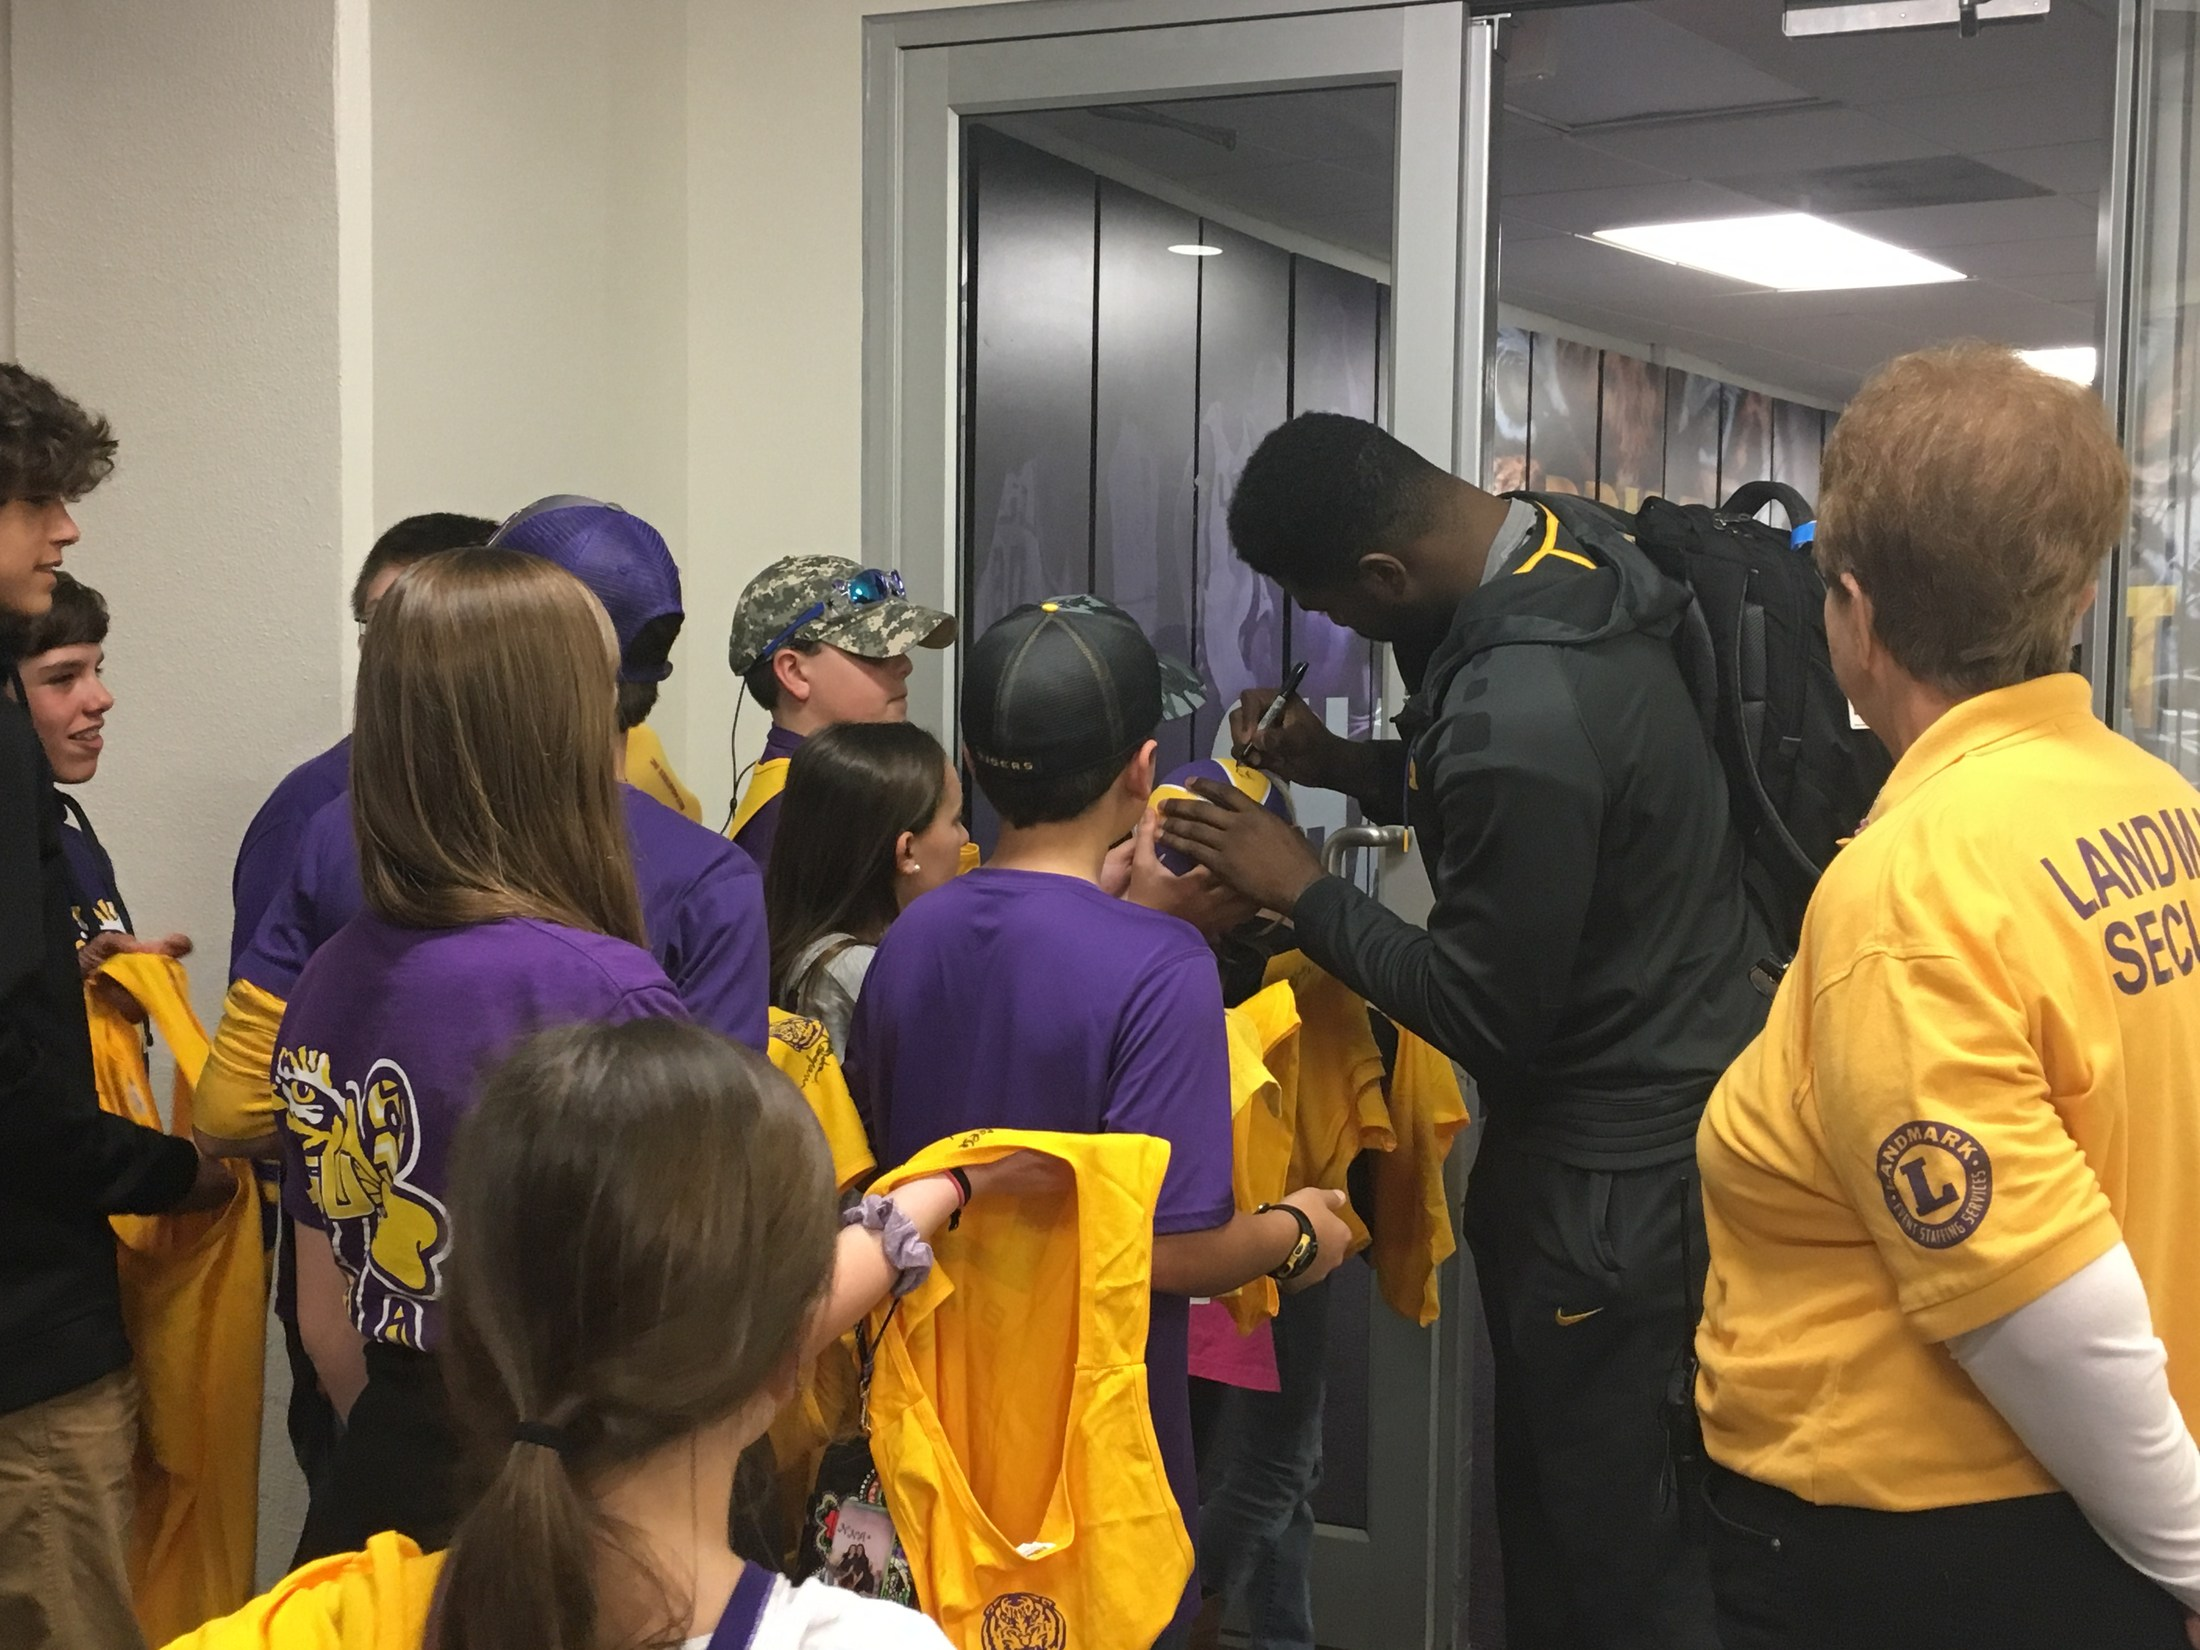 LSU Basketball player signing shirts, posters, etc.